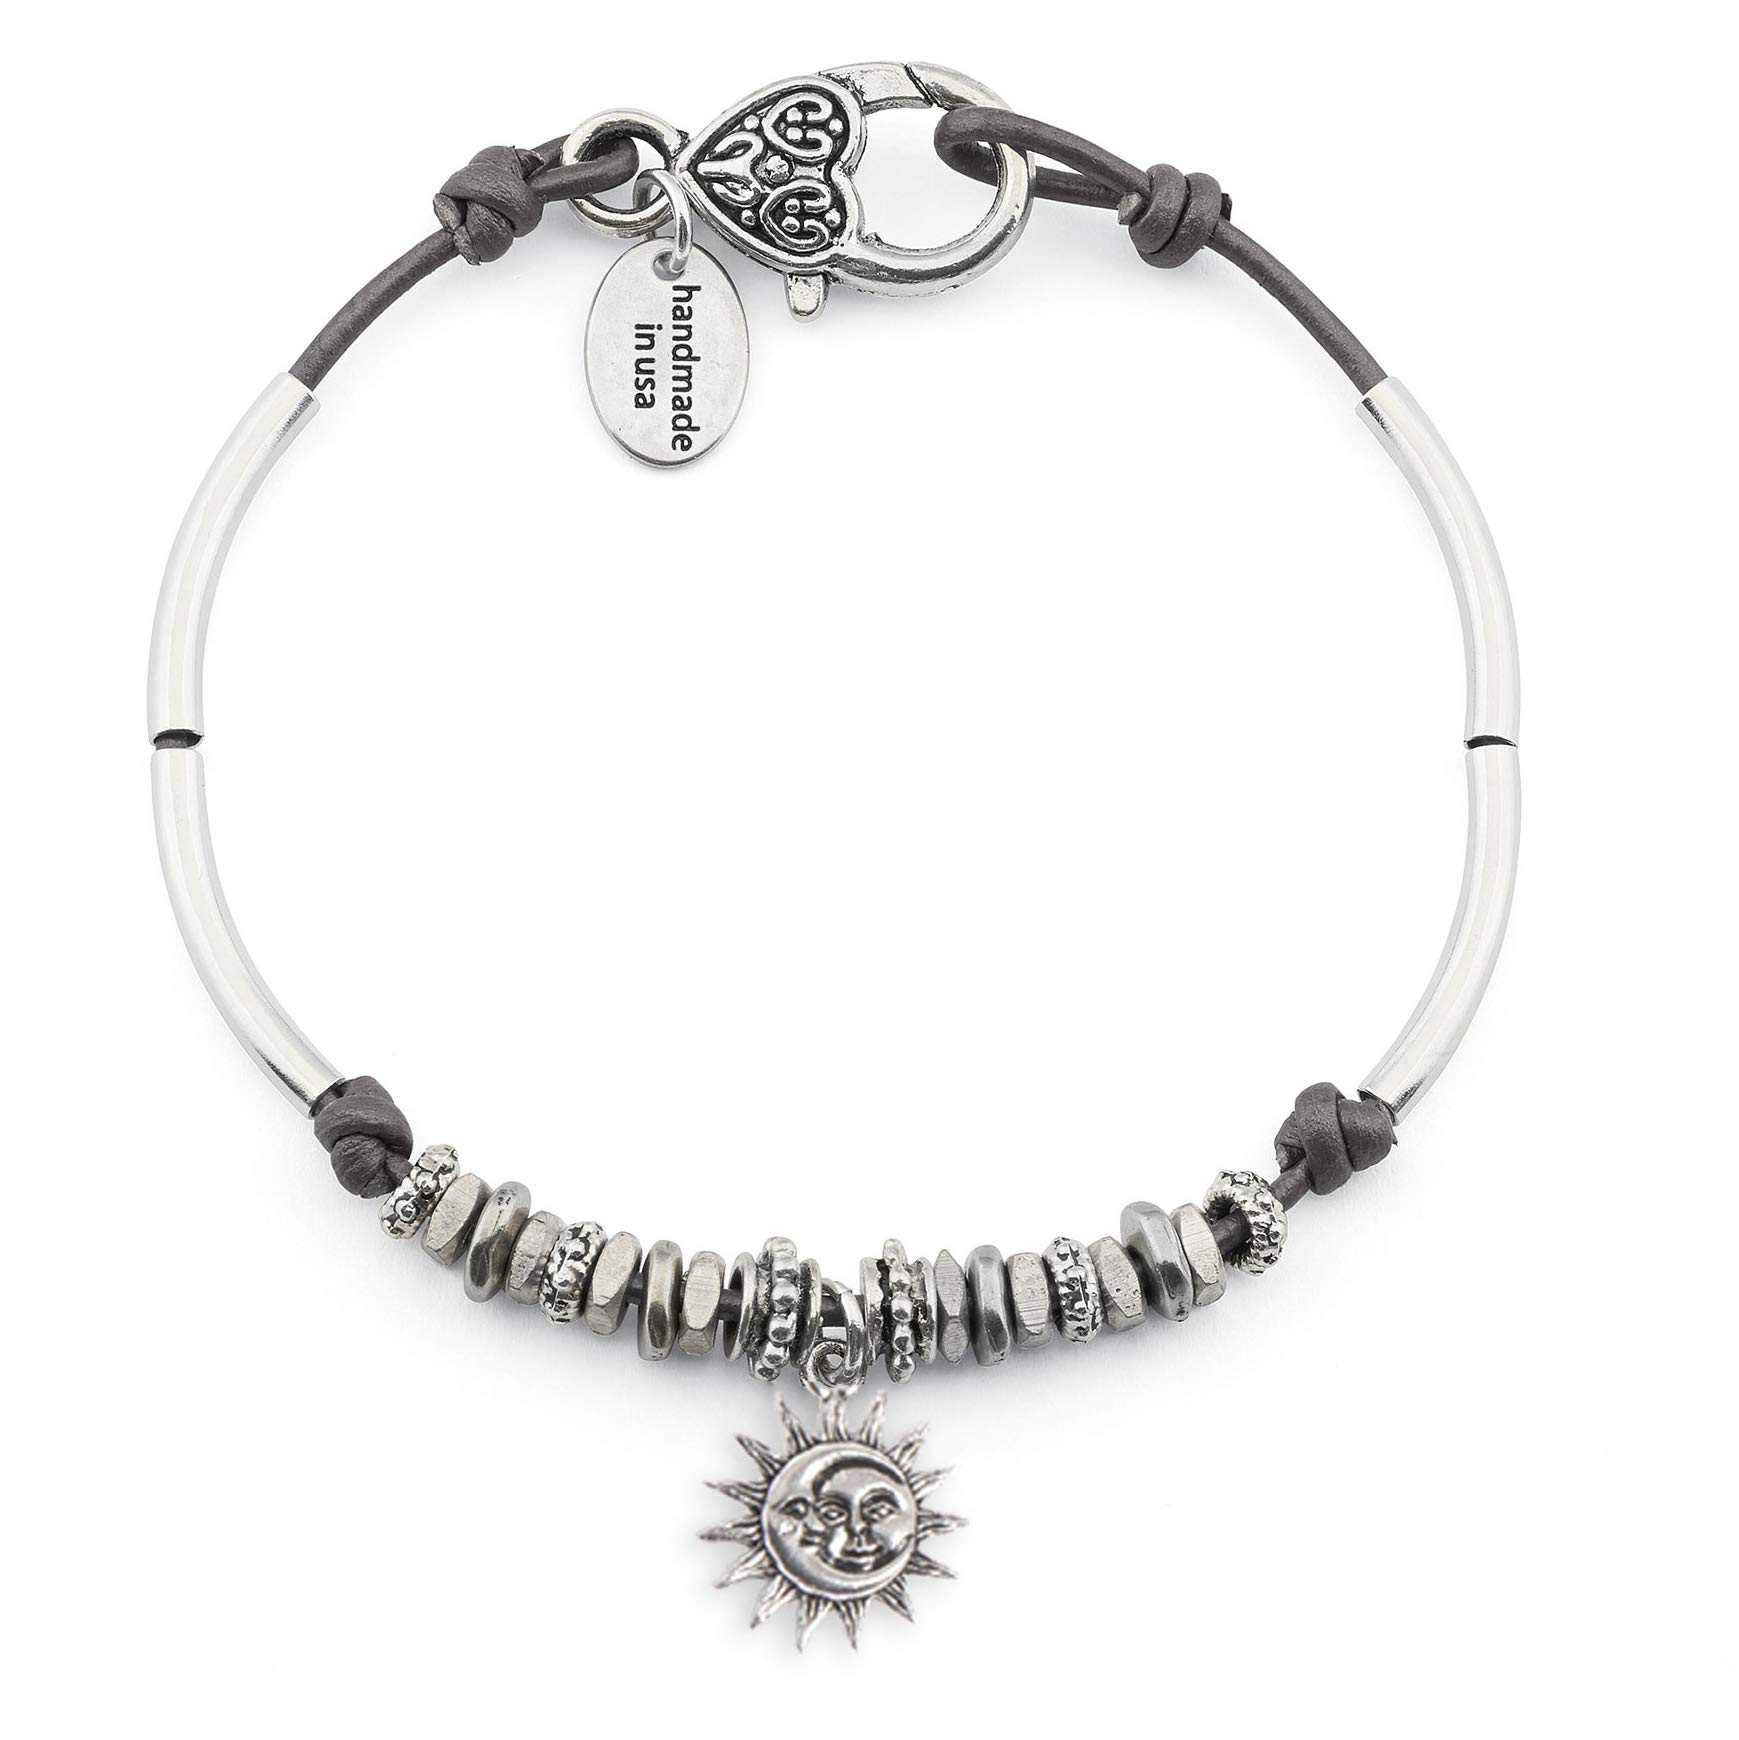 Lizzy James Lola Anklet w Moon Sun Charm in Metallic Gunmetal Leather Silver Plate Crescents (9 INCH)